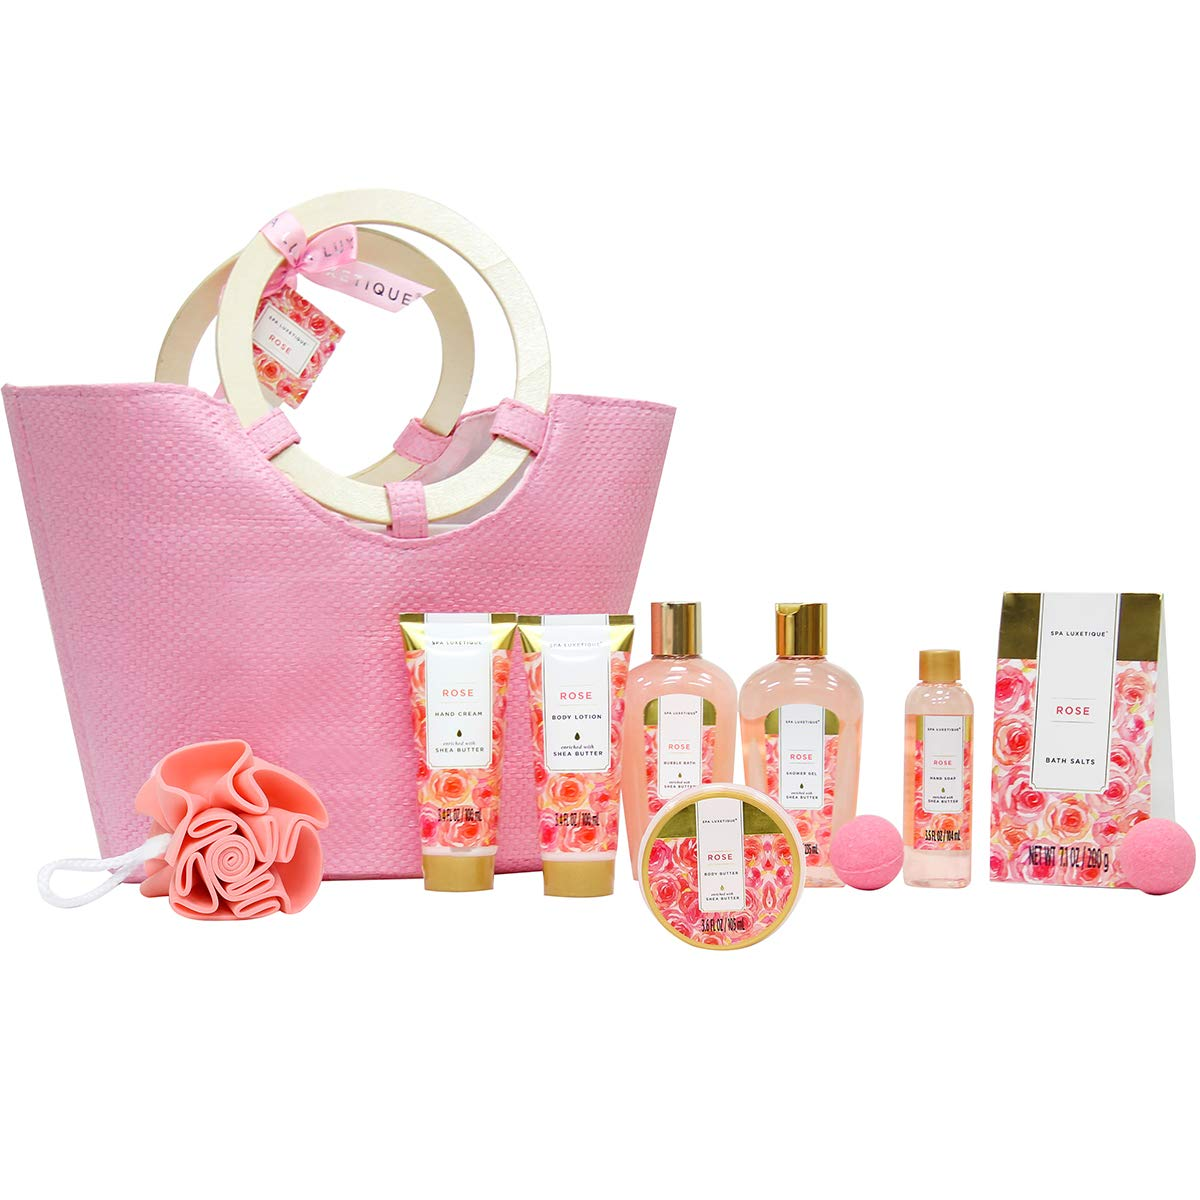 Spa Luxetique Rose Spa Gift Baskets for Women, Premium 10pc Gift Baskets, Best Holiday Gift Set for Women - Deluxe Spa Tote Bag with Wooden Handle, Bath Salt, Hand Soap, Shower Gel and Moe! by spa luxetique